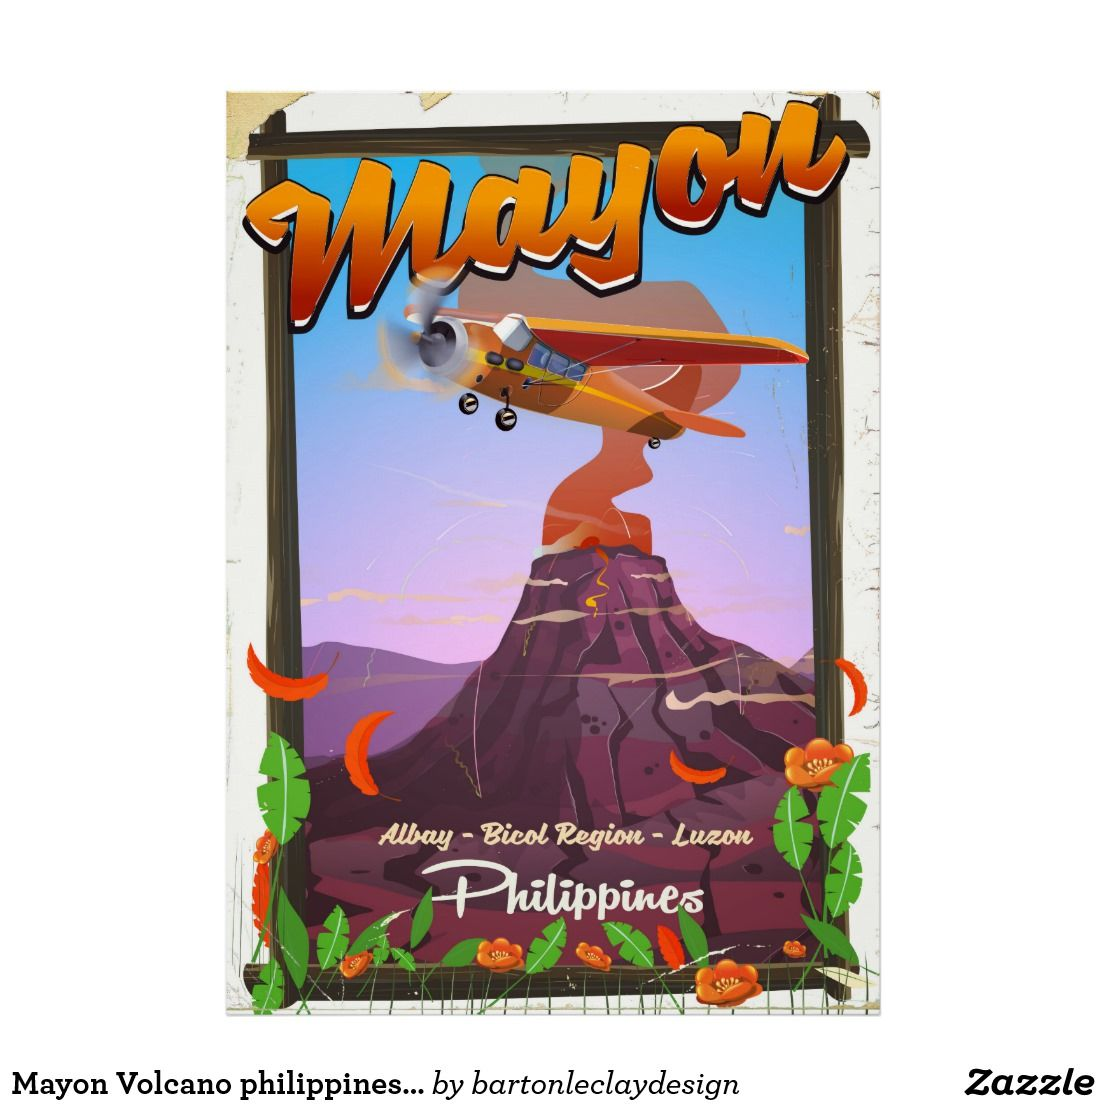 Mayon Volcano philippines adventure poster